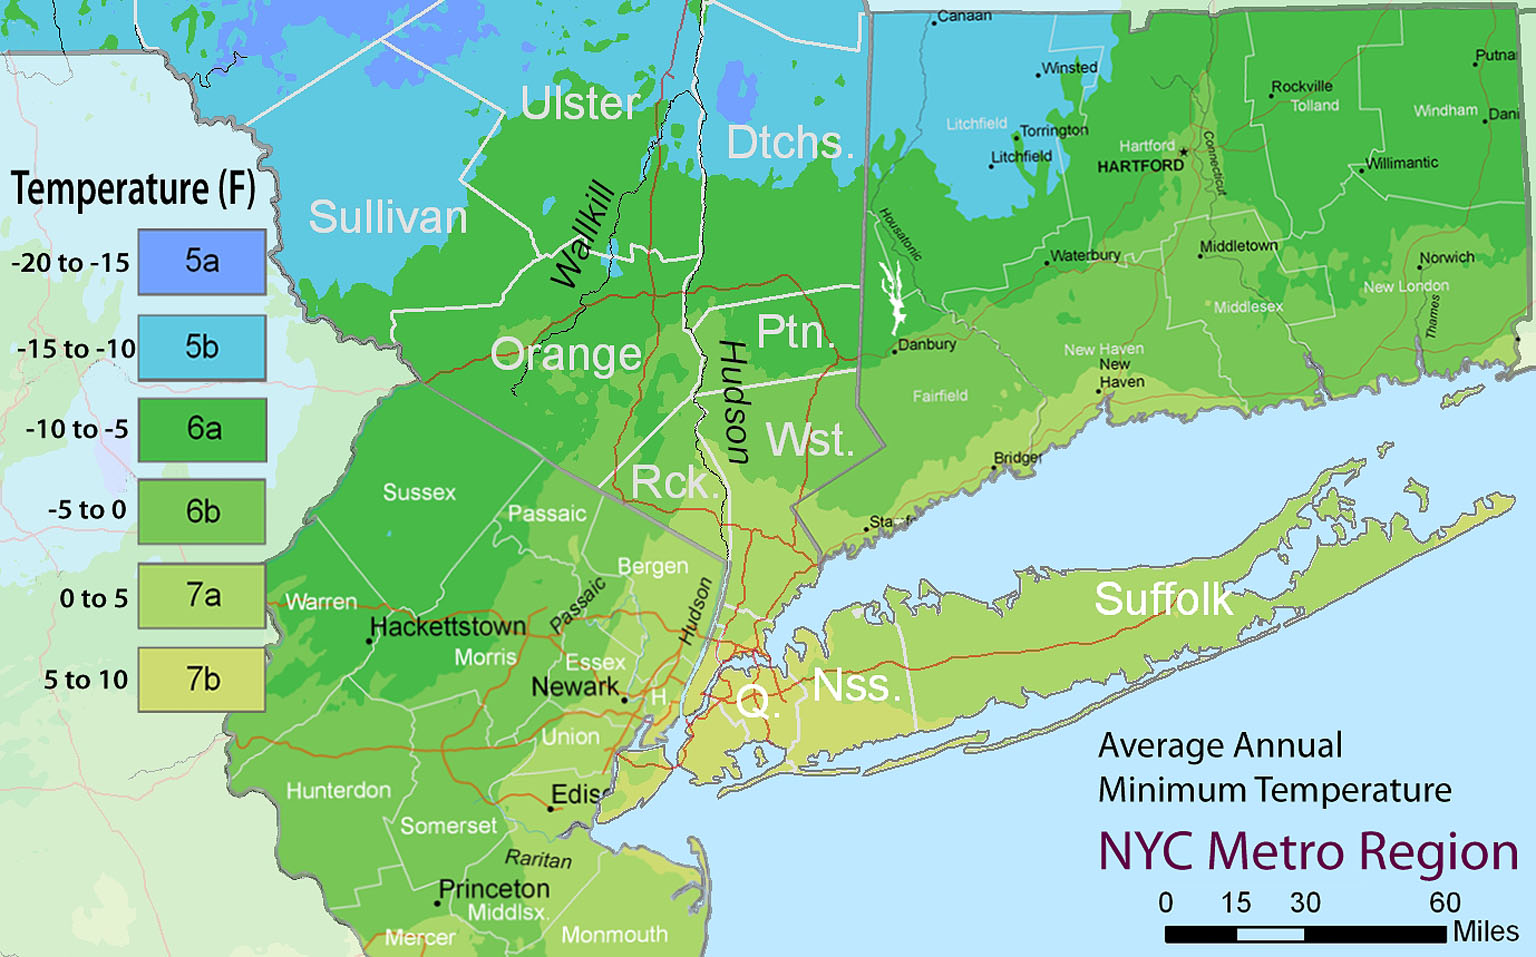 NYC Metro Region Plant Hardiness Zone Map